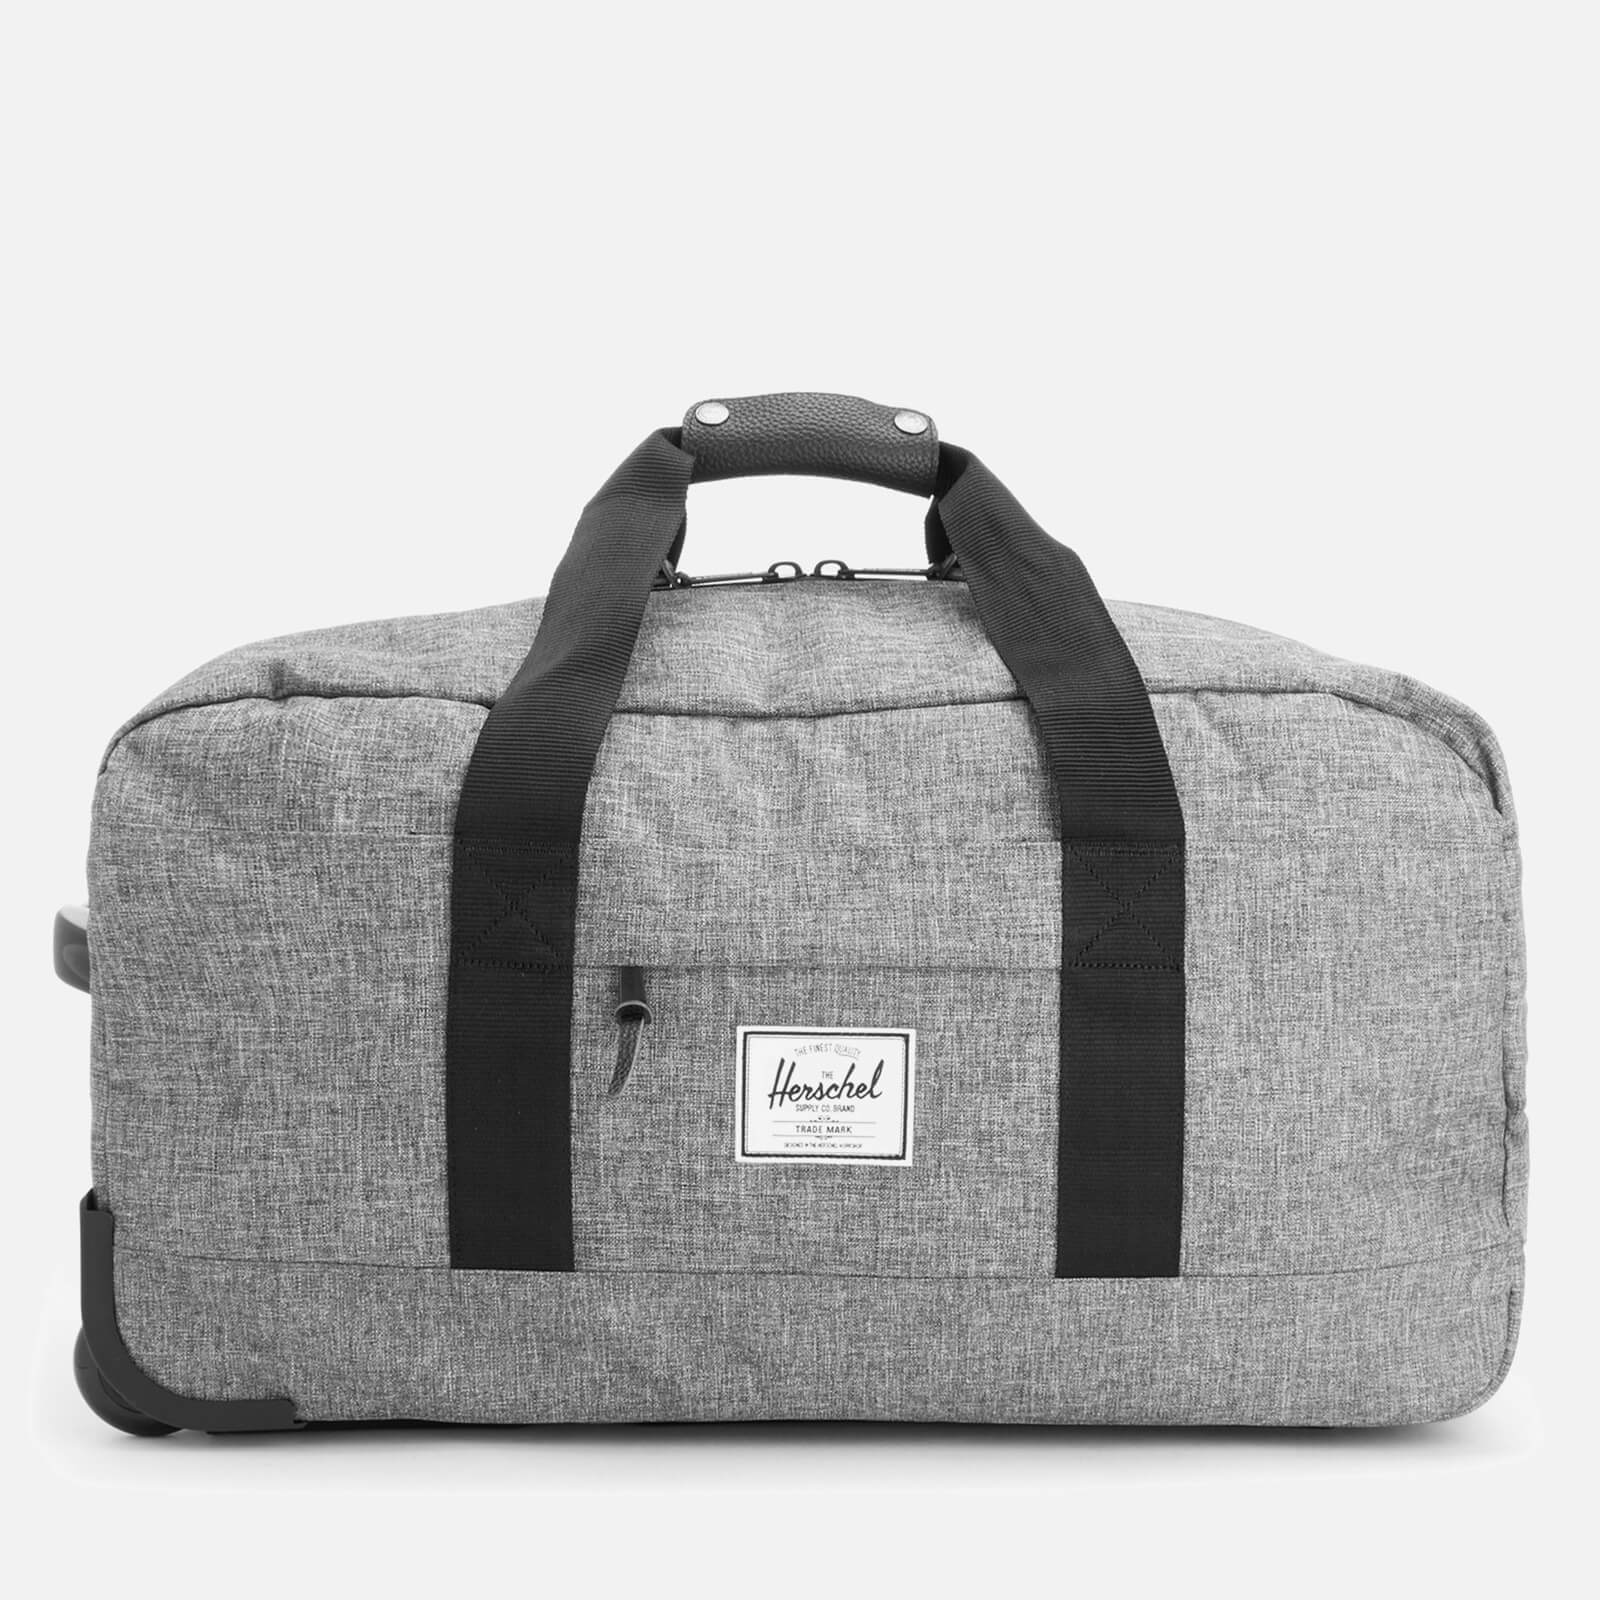 c2f231aa6 Herschel Supply Co. Wheelie Outfitter Case - Raven/Crosshatch